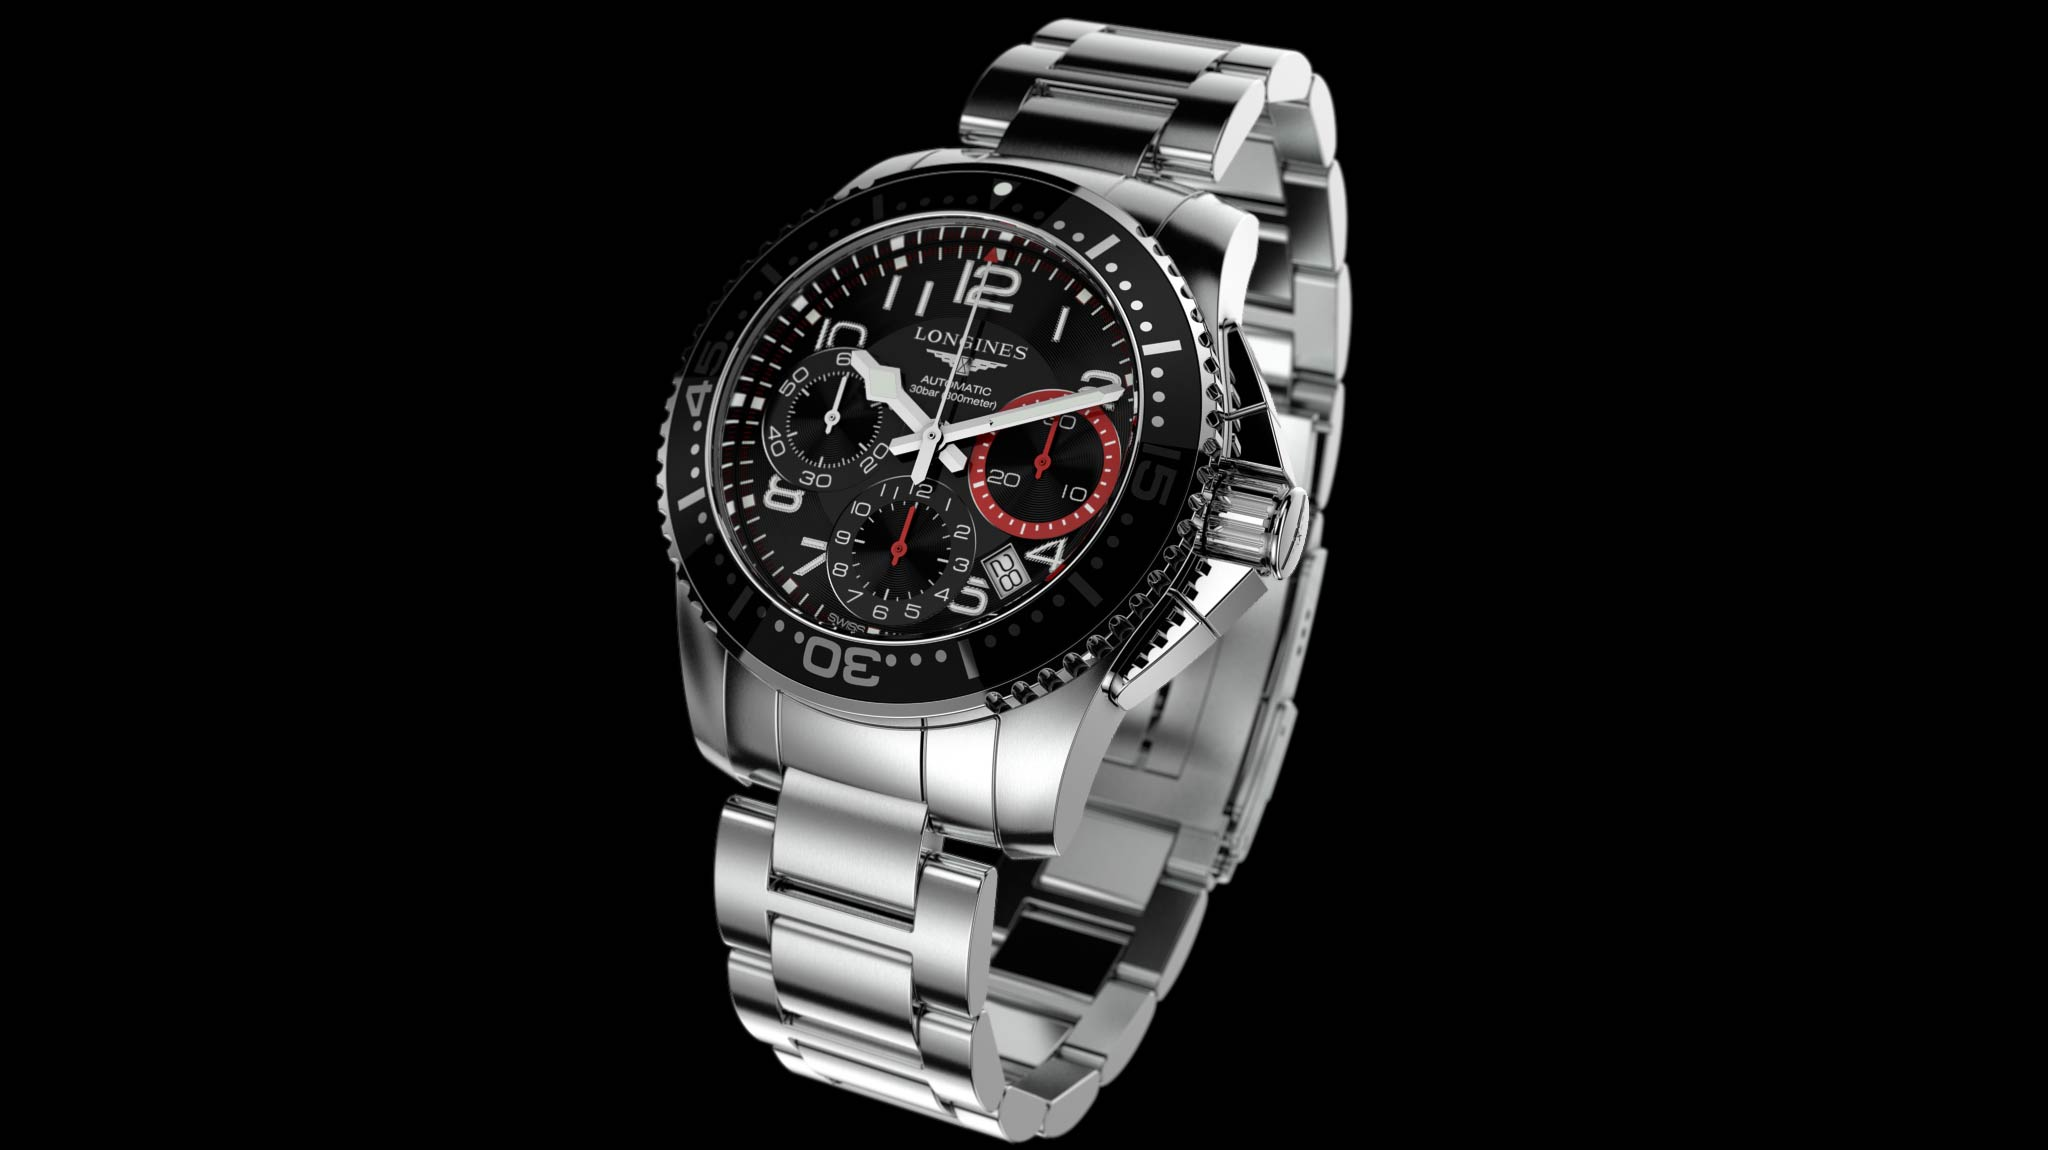 3DVISION NYVALIS 2014 LONGINES HydroConquest 01